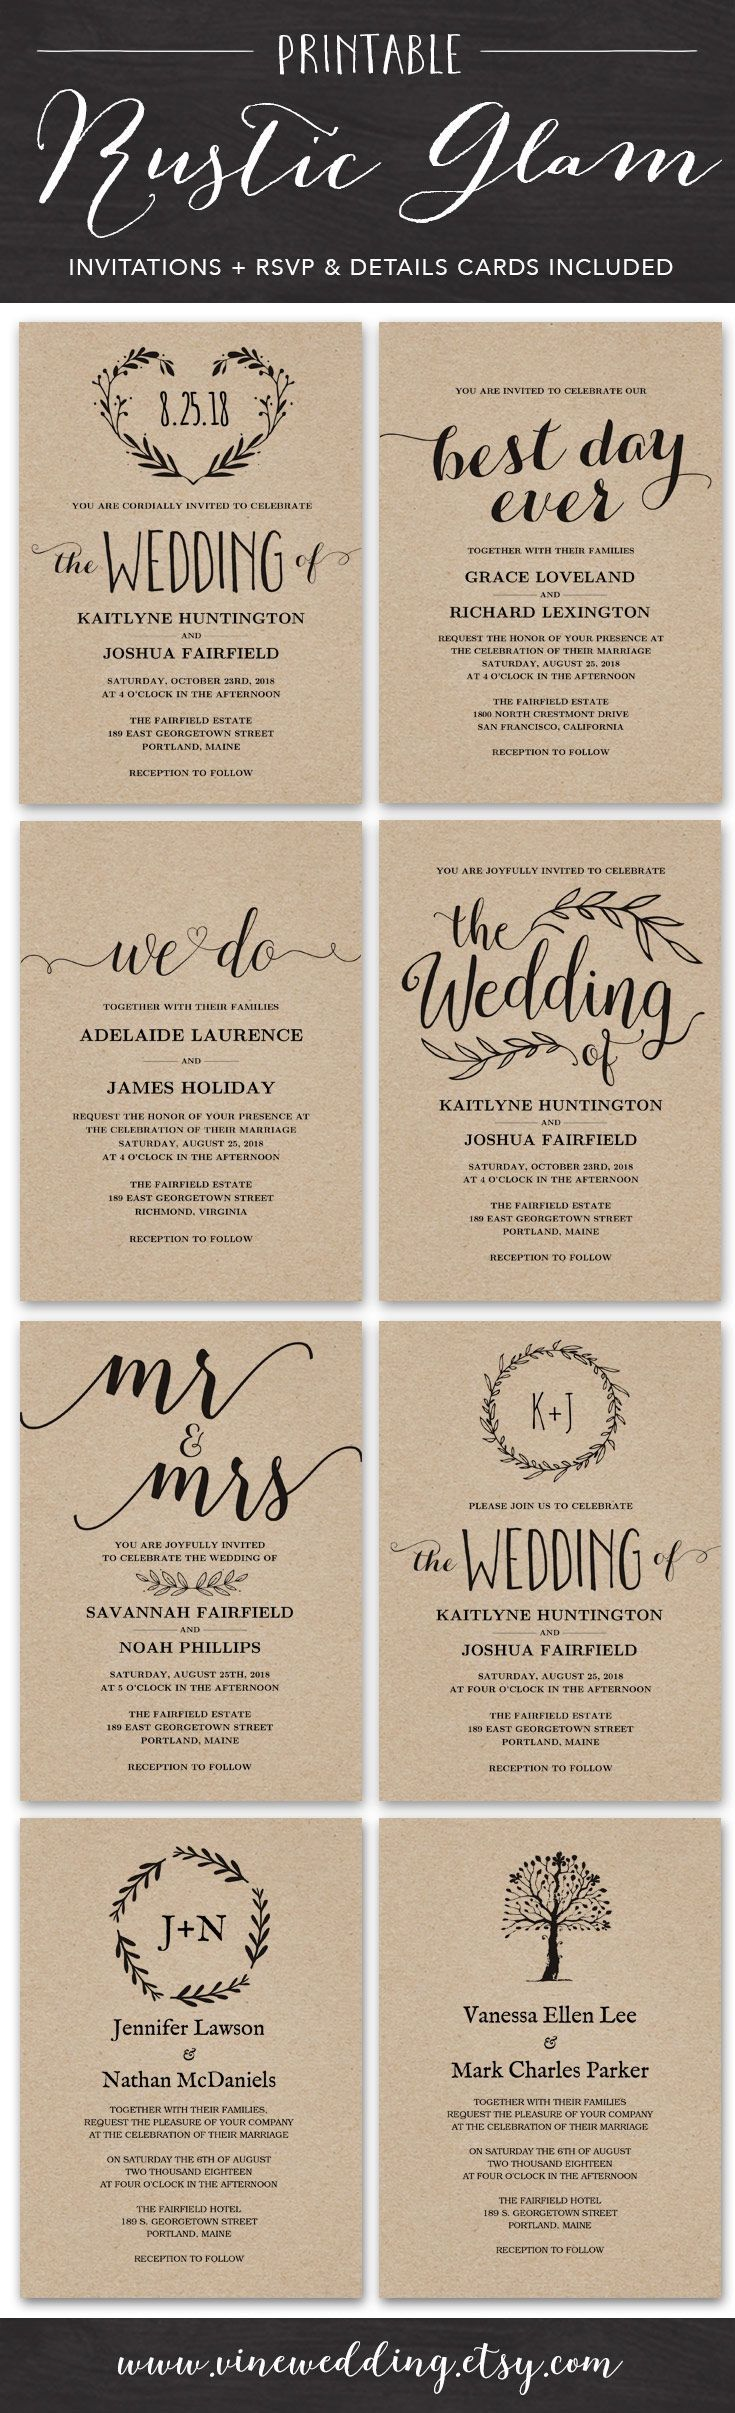 193 Best Wedding Invitations Images On Pinterest Rustic Diy